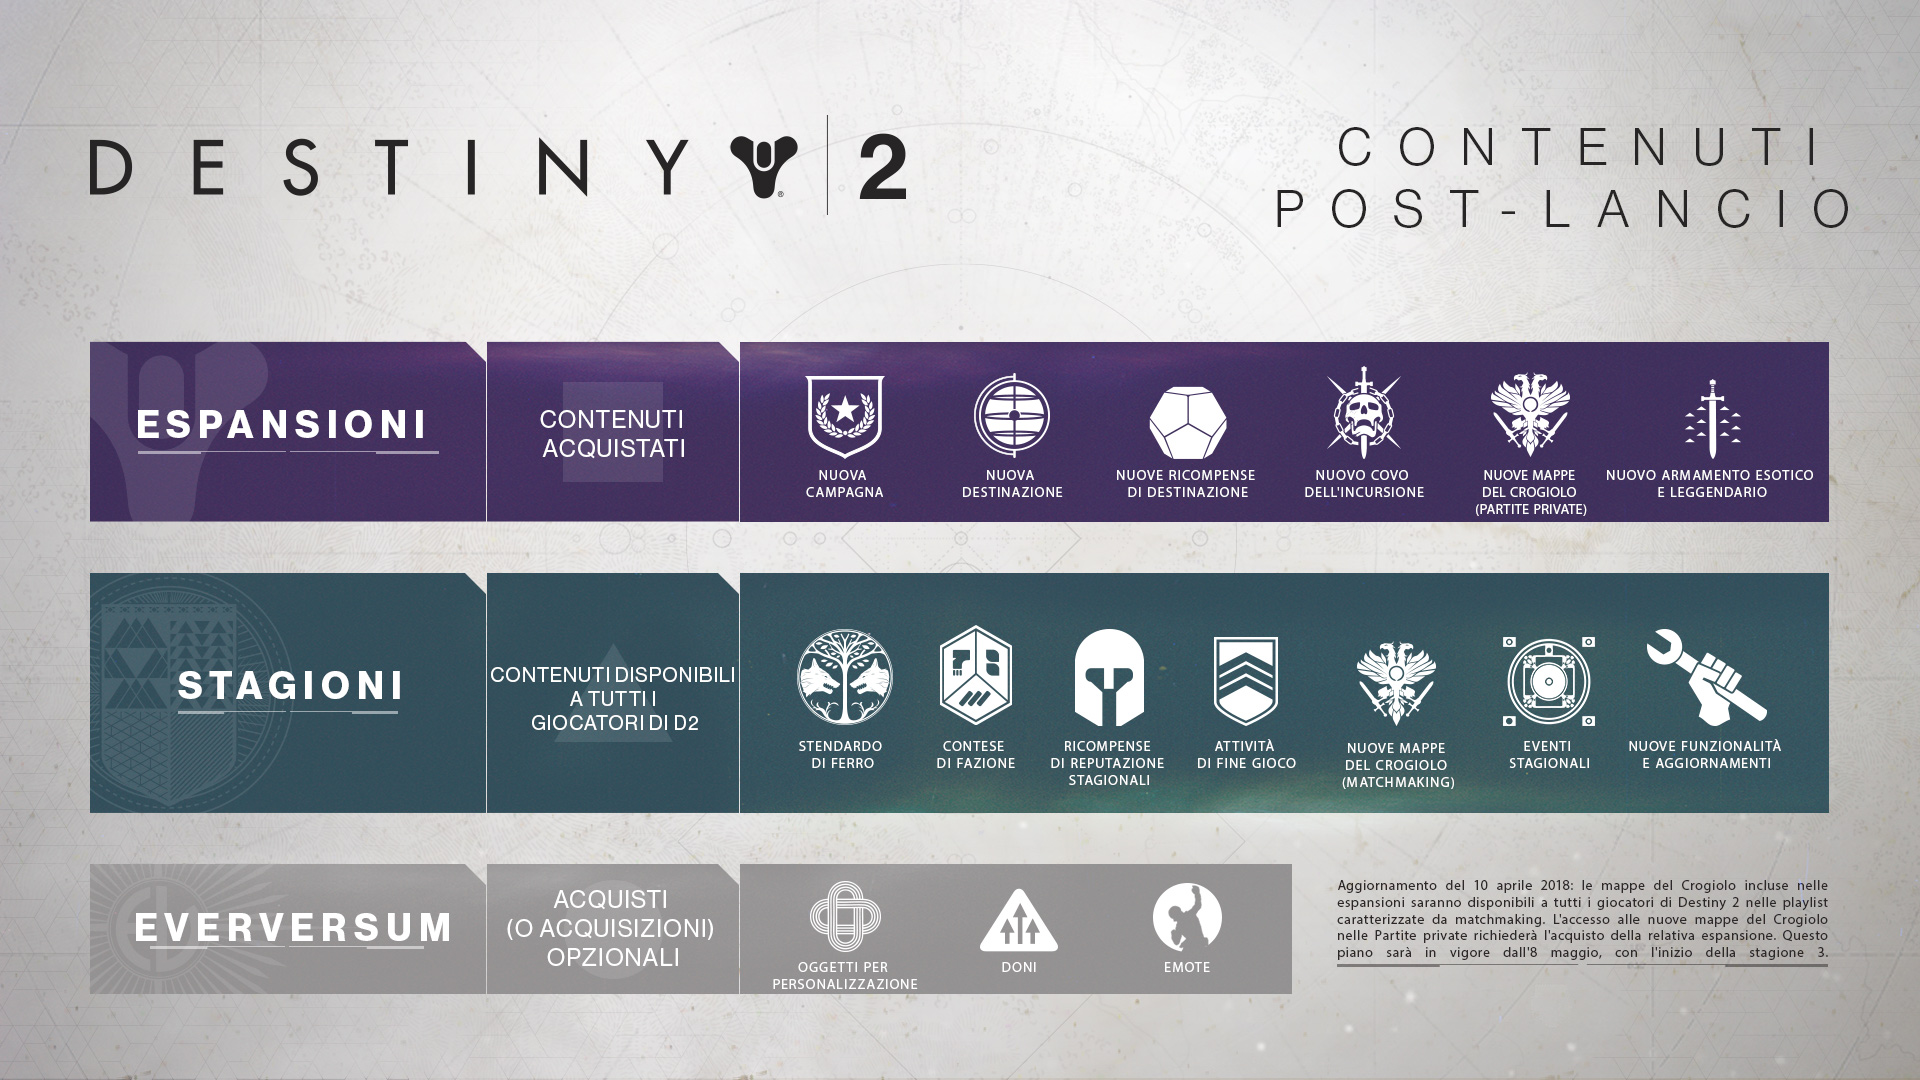 https://www.bungie.net/pubassets/110169/post_launch_content_infographic_IT.jpg?cv=3983621215&av=1151964485